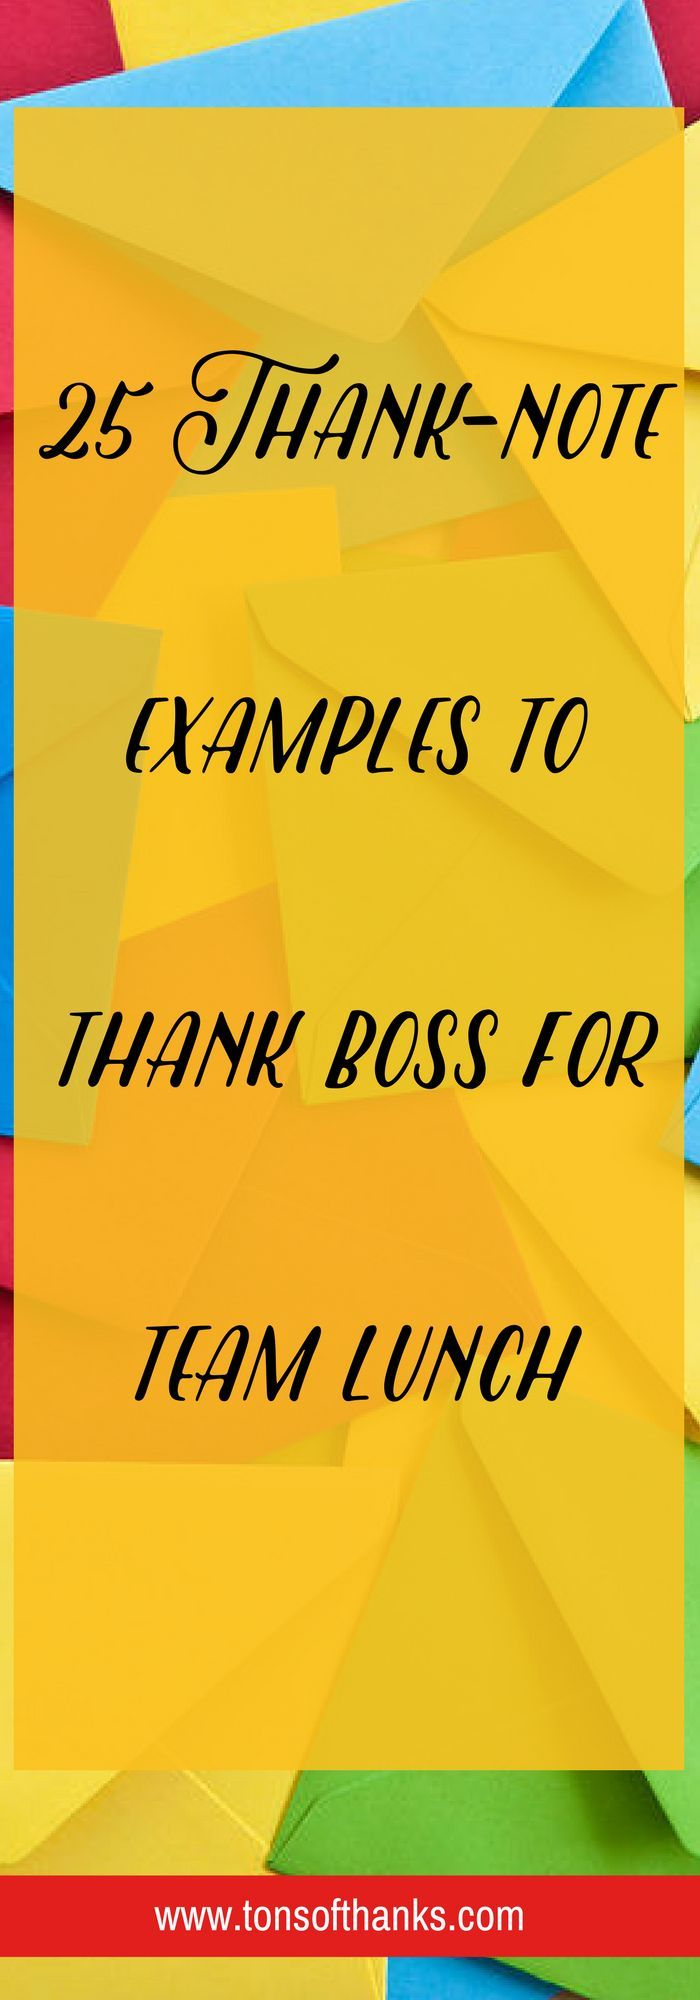 25 Thank Note Examples To Thank Boss For Team Lunch